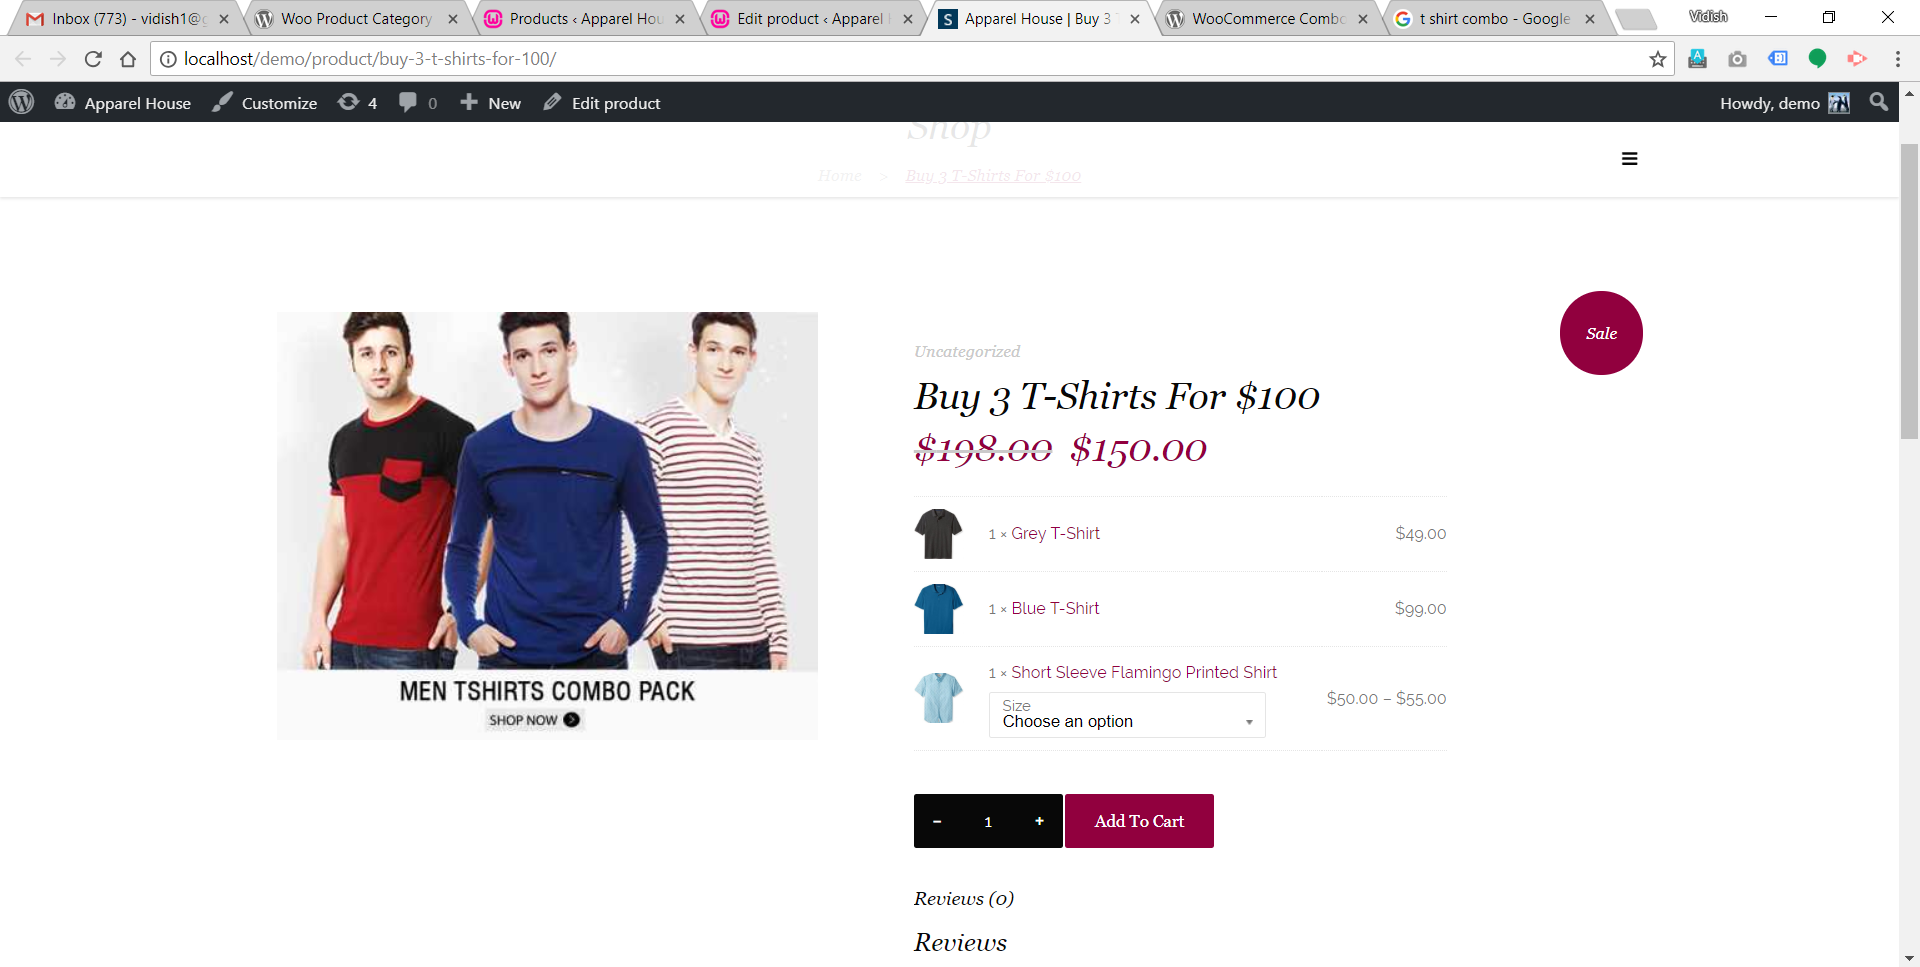 Frontend of combo offer where user can purchase it.